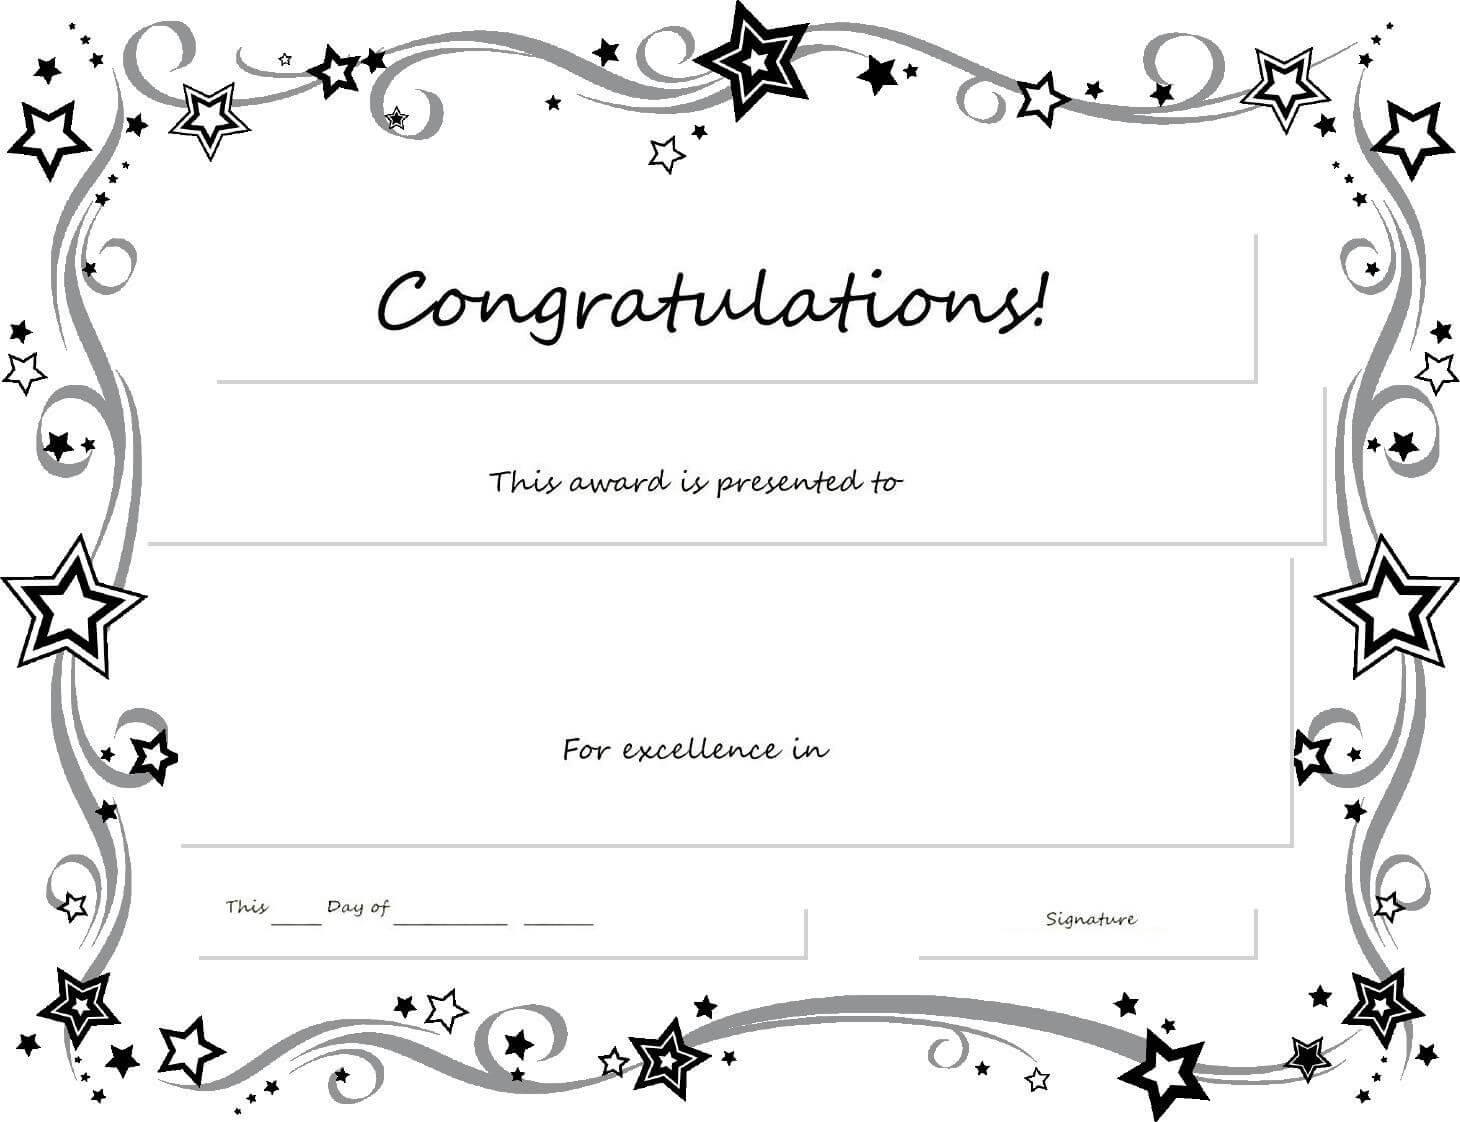 Congratulations Certificate Word Template - Erieairfair With Pertaining To Congratulations Certificate Word Template